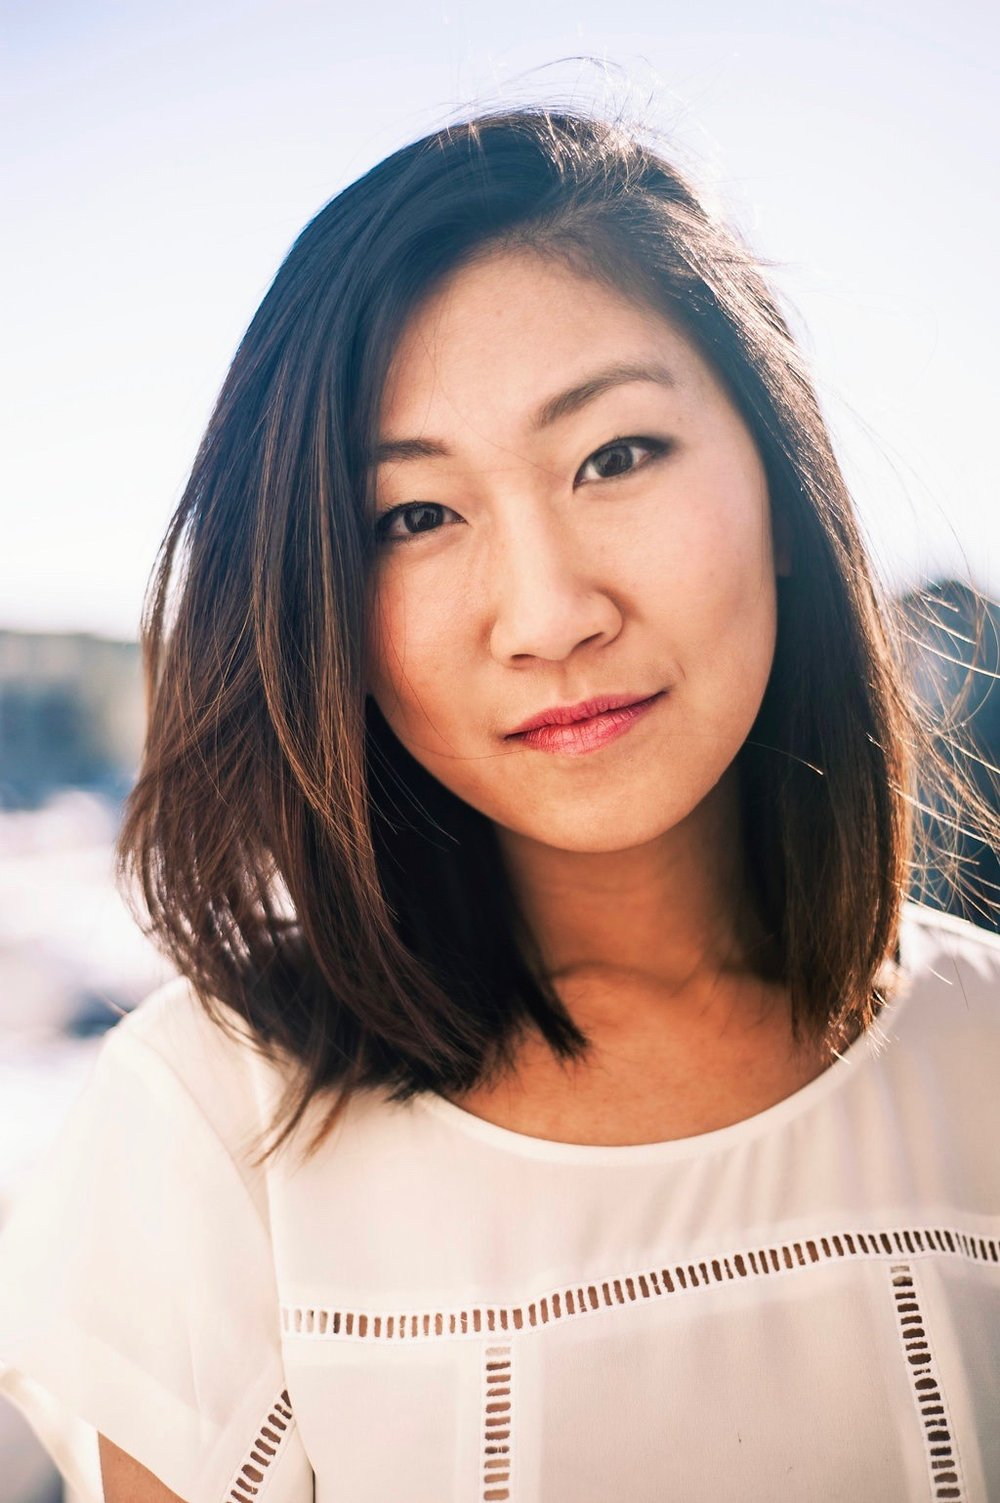 Lucy Tan  grew up in New Jersey and has spent much of her adult life in New York and Shanghai. She received her B.A. from New York University and her M.F.A. from the University of Wisconsin-Madison, where she was awarded the 2016 August Derleth Prize. Her fiction has been published in journals such as Asia Literary Review and Ploughshares, where she was winner of the 2015 Emerging Writer's Contest.